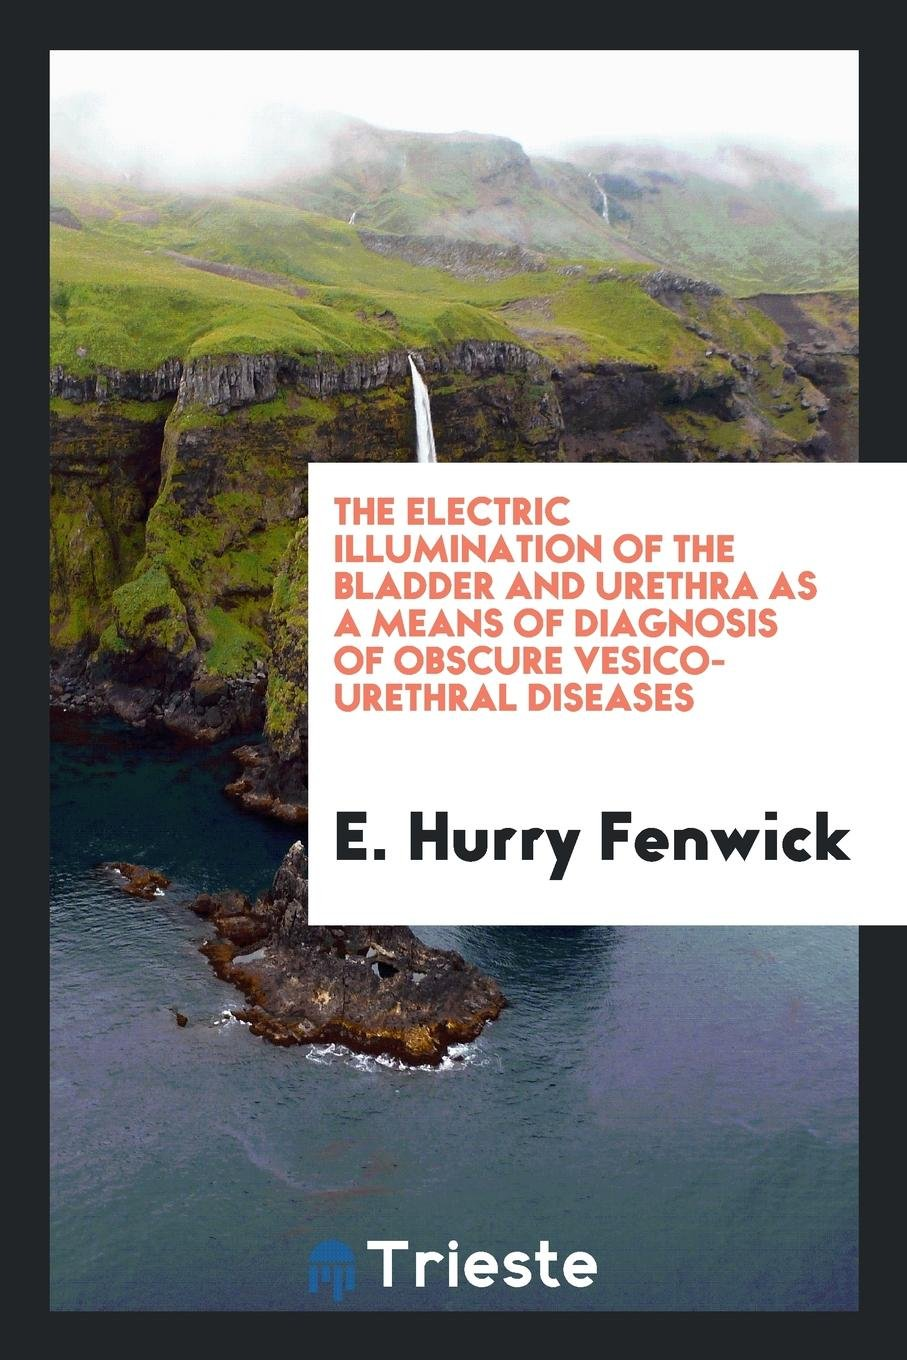 The Electric Illumination of the Bladder and Urethra as a Means of Diagnosis of Obscure Vesico-Urethral Diseases ebook